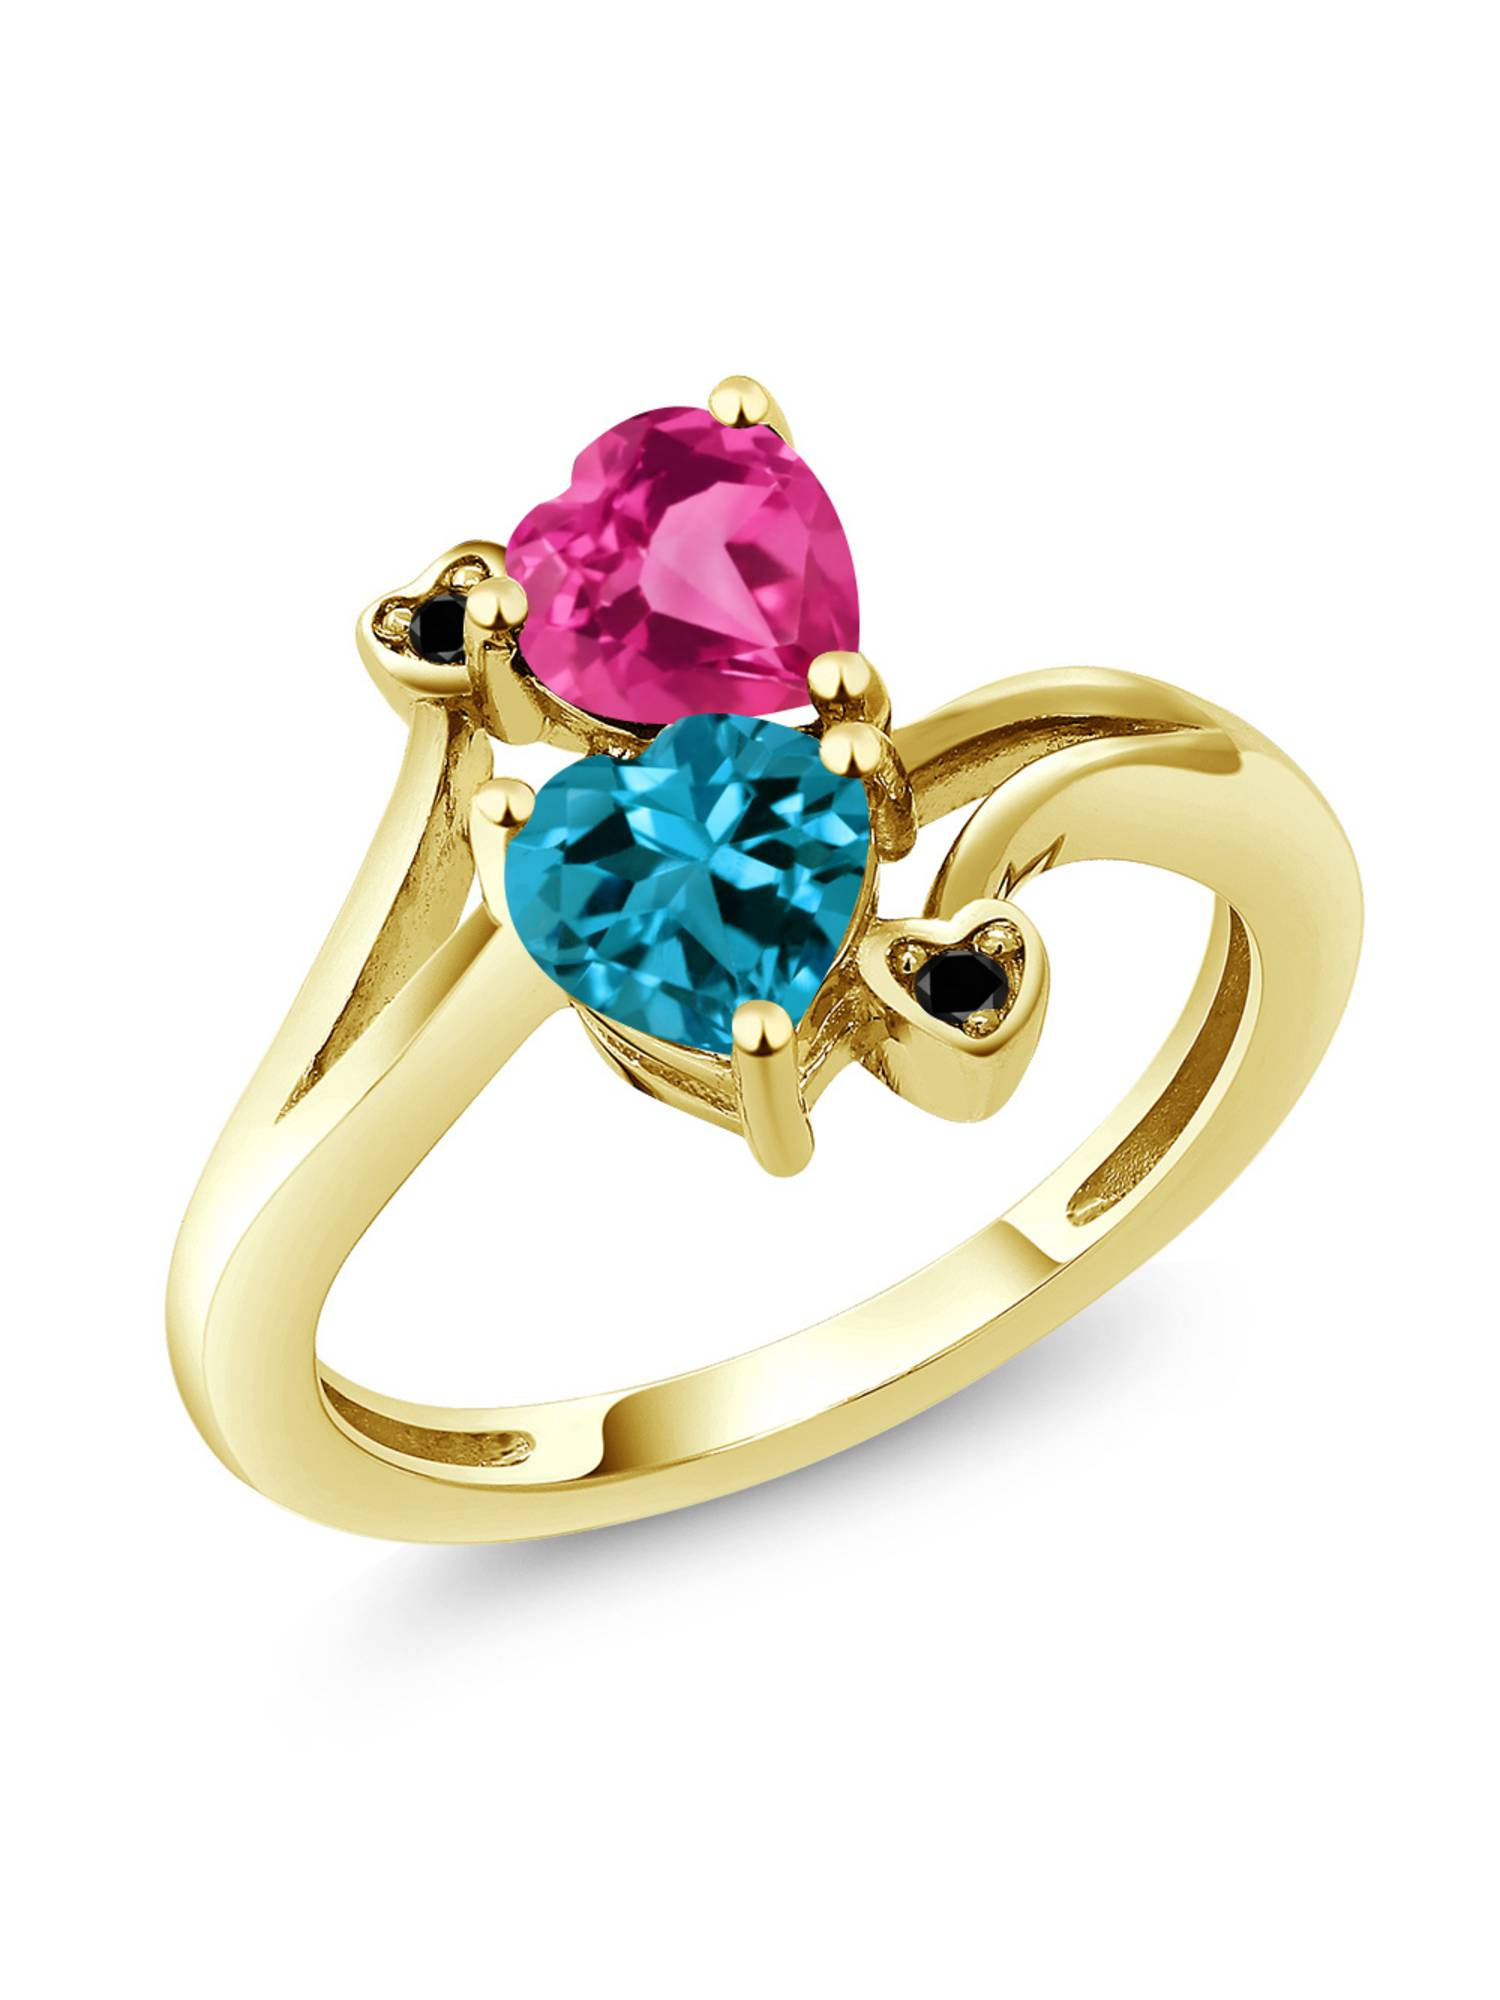 1.78 Ct Heart Shape London Blue Topaz Pink Created Sapphire 10K Yellow Gold Ring by